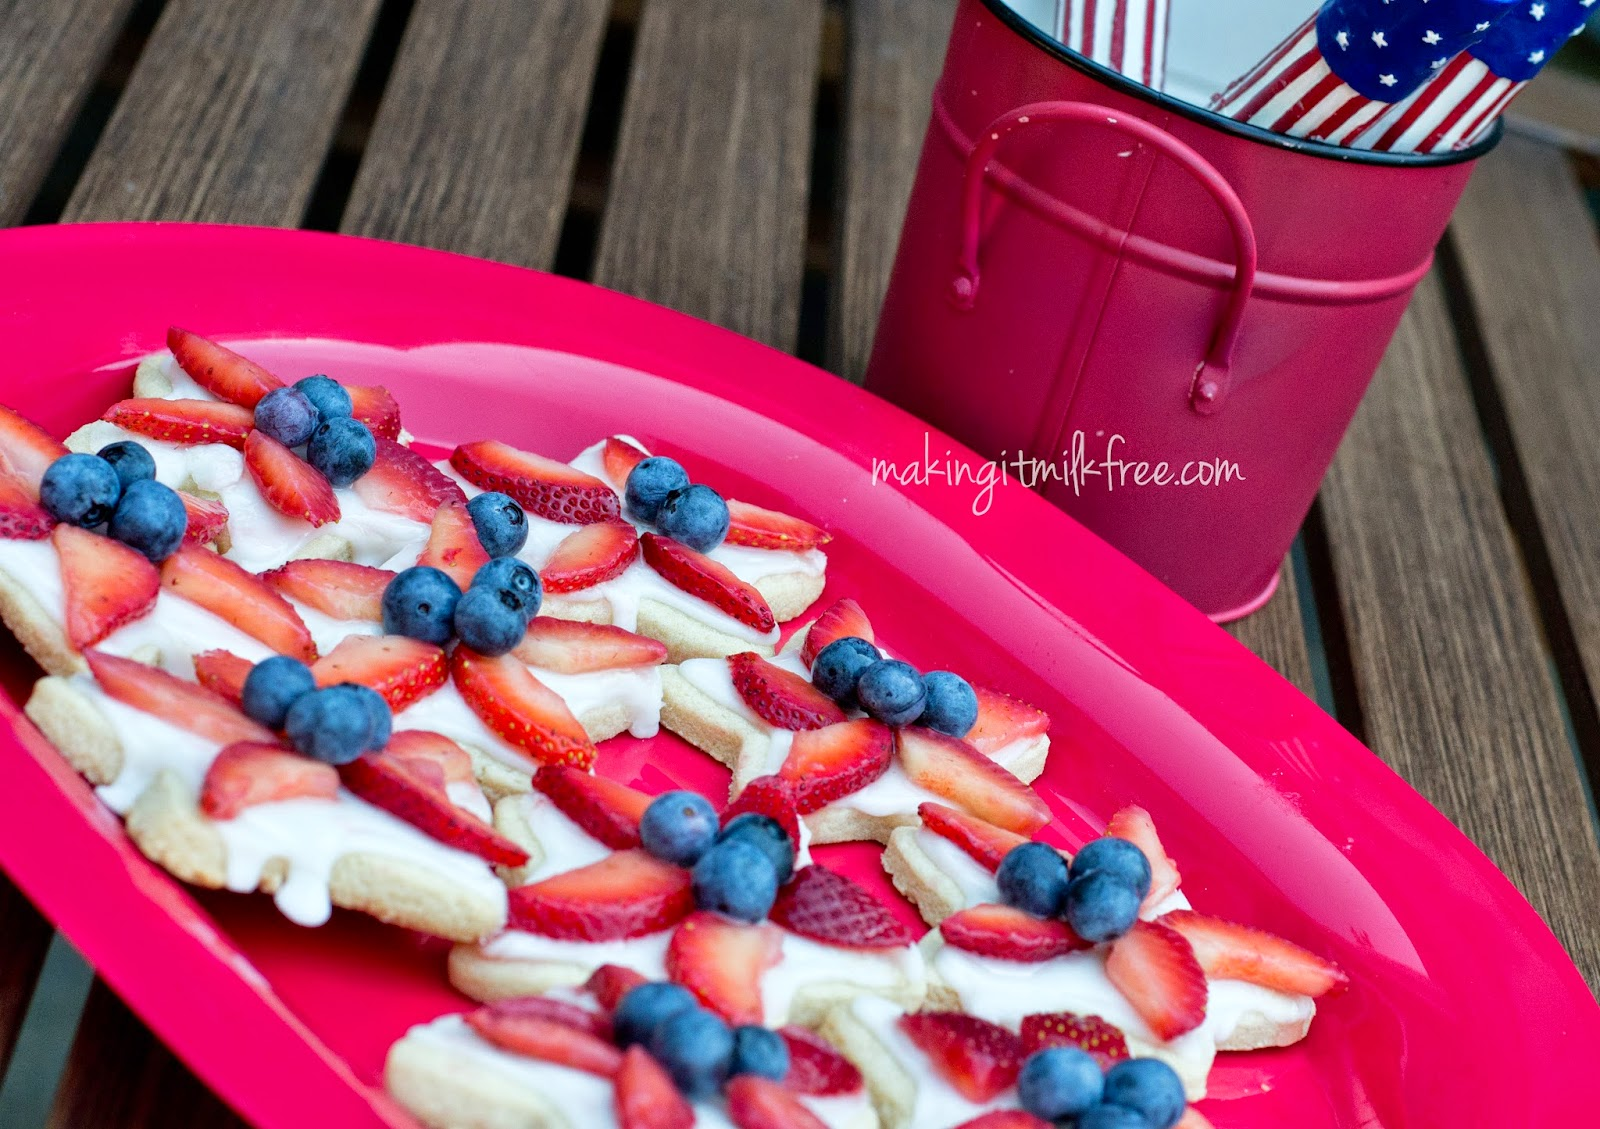 #patriotic #sugarcookies #fruit